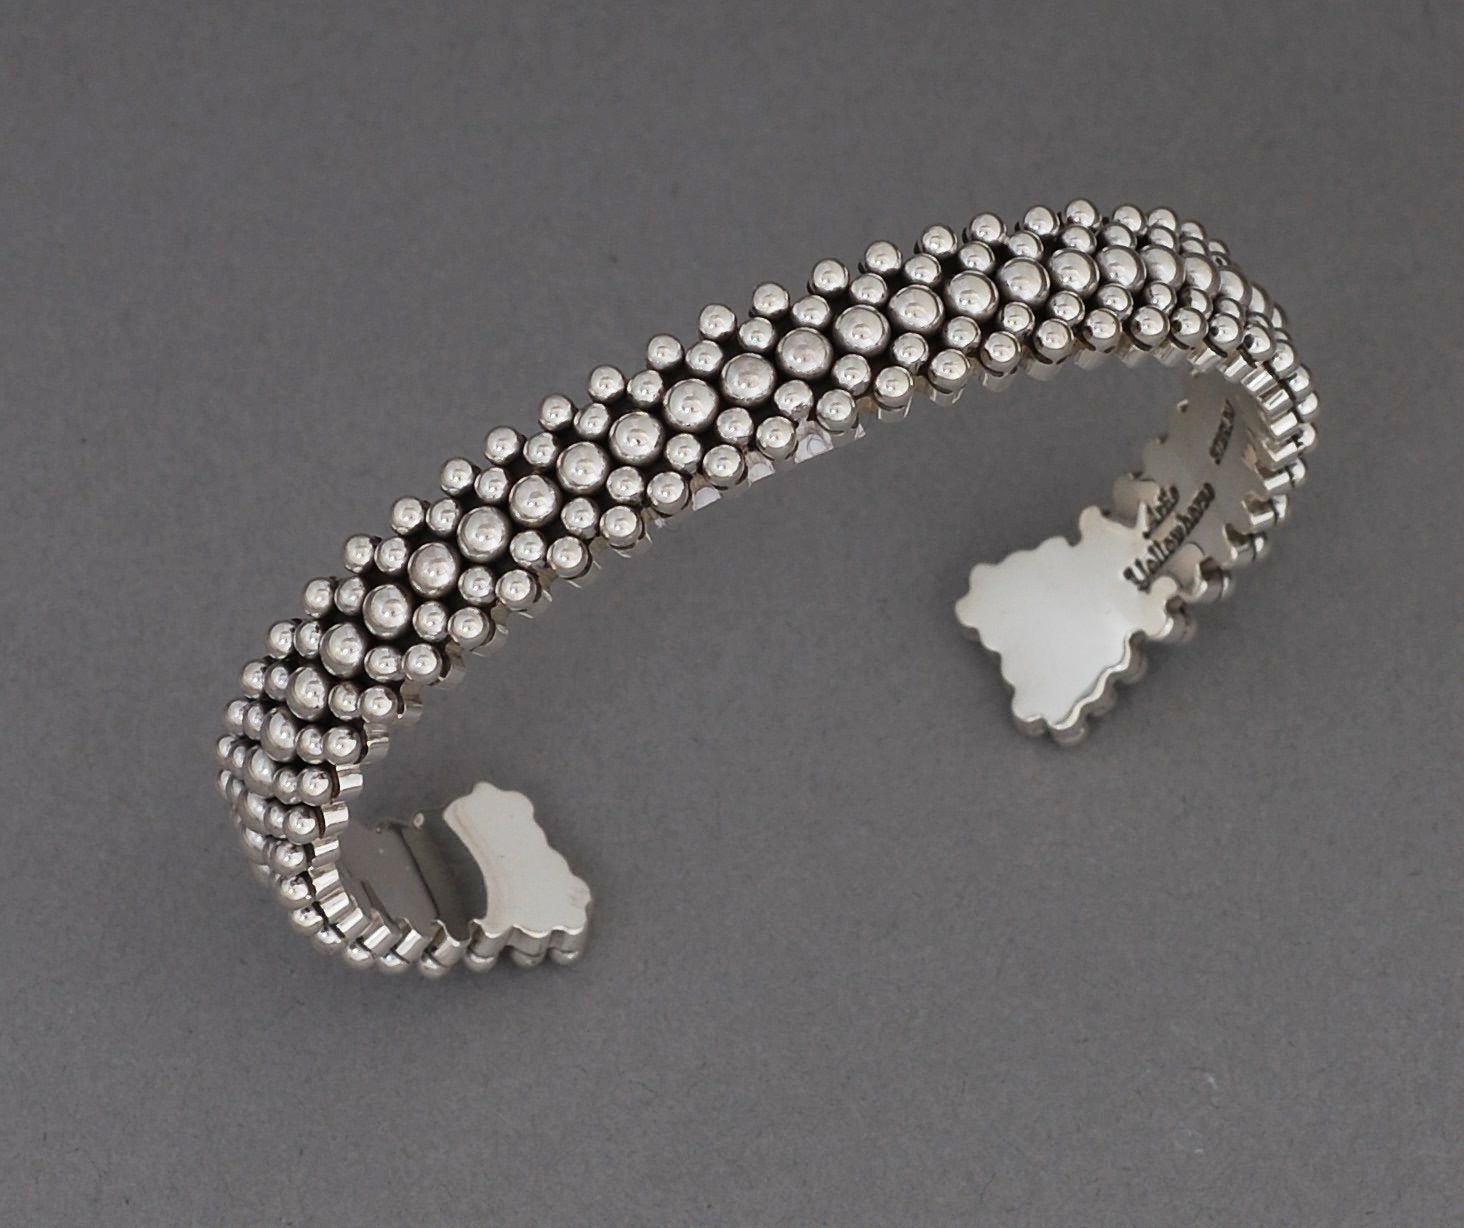 Cuff Bracelet with full beading, by Artie Yellowhorse (Navajo)